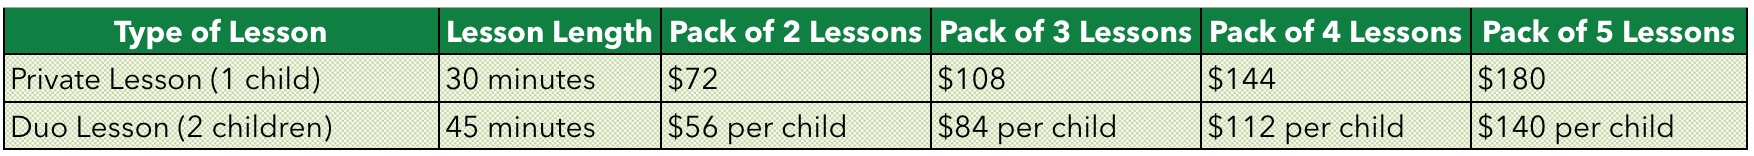 Lesson pricing